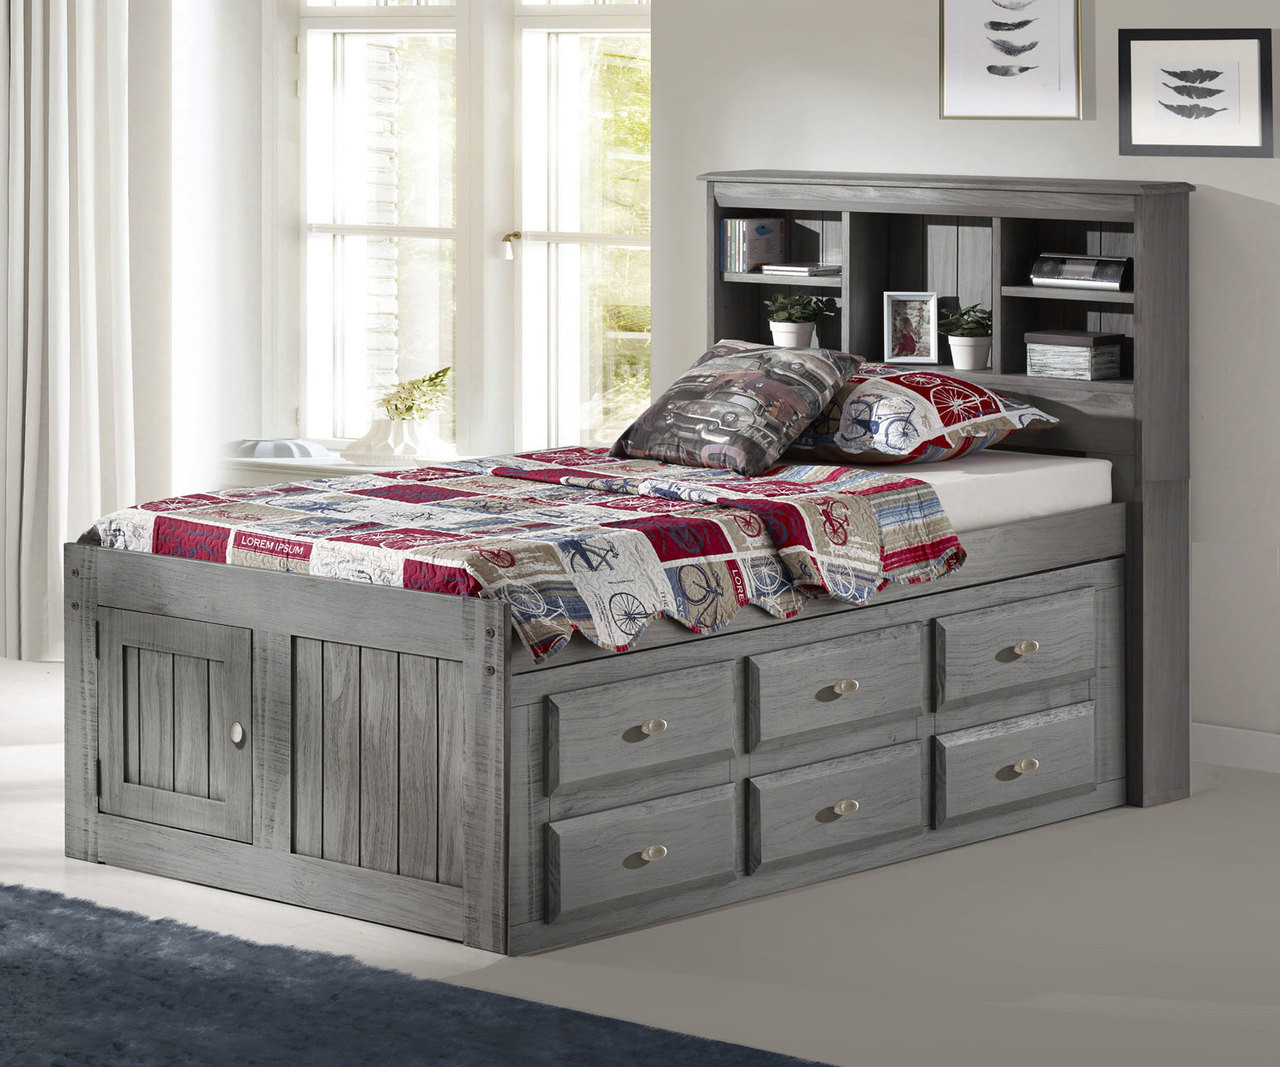 Discovery World Furniture Charcoal Twin Size Bookcase Captains Bed Twin Size Grey Bookcase Captain Beds With Drawers Model 3220